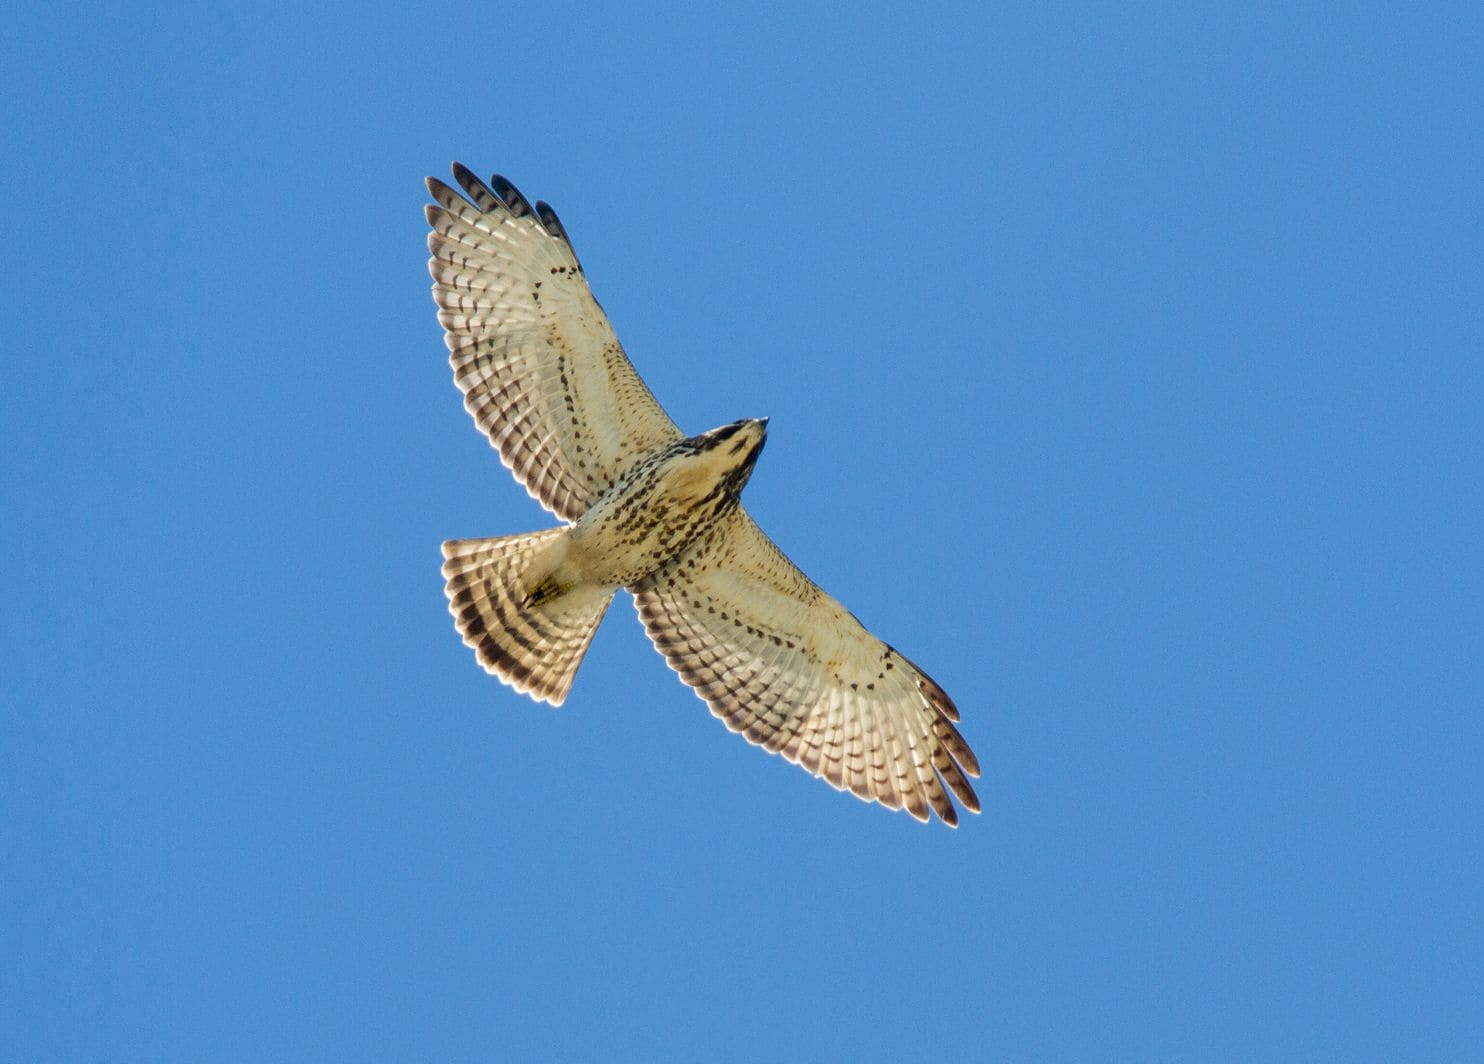 Migrating Birds Of Prey Draw Visitors To The Florida Keys